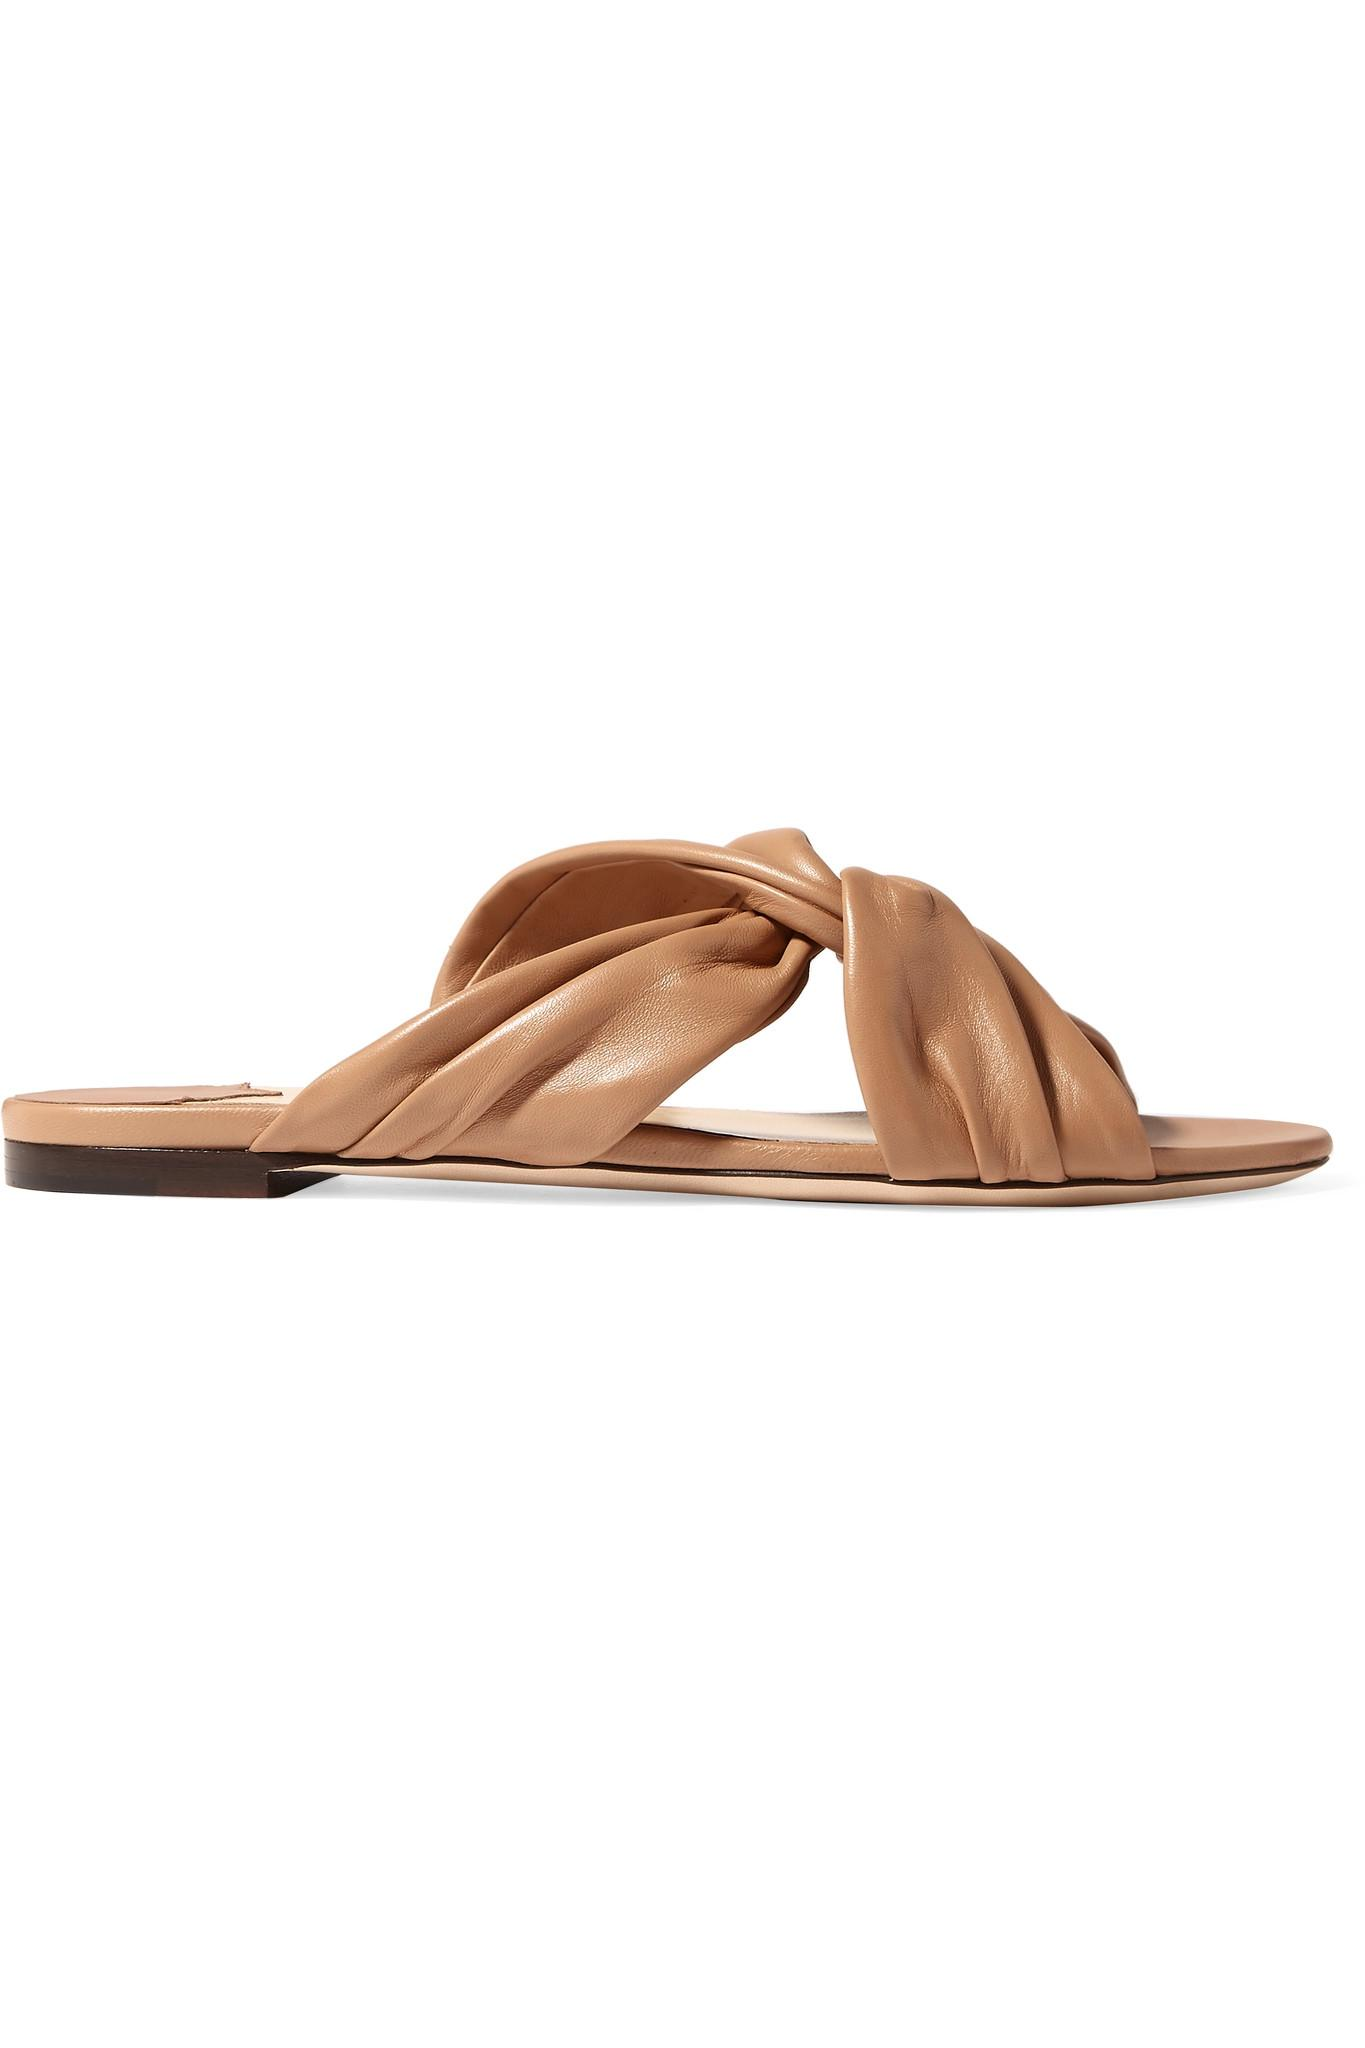 2d28a4374f42 Lyst - Jimmy Choo Leila Knotted Leather Slides in Brown